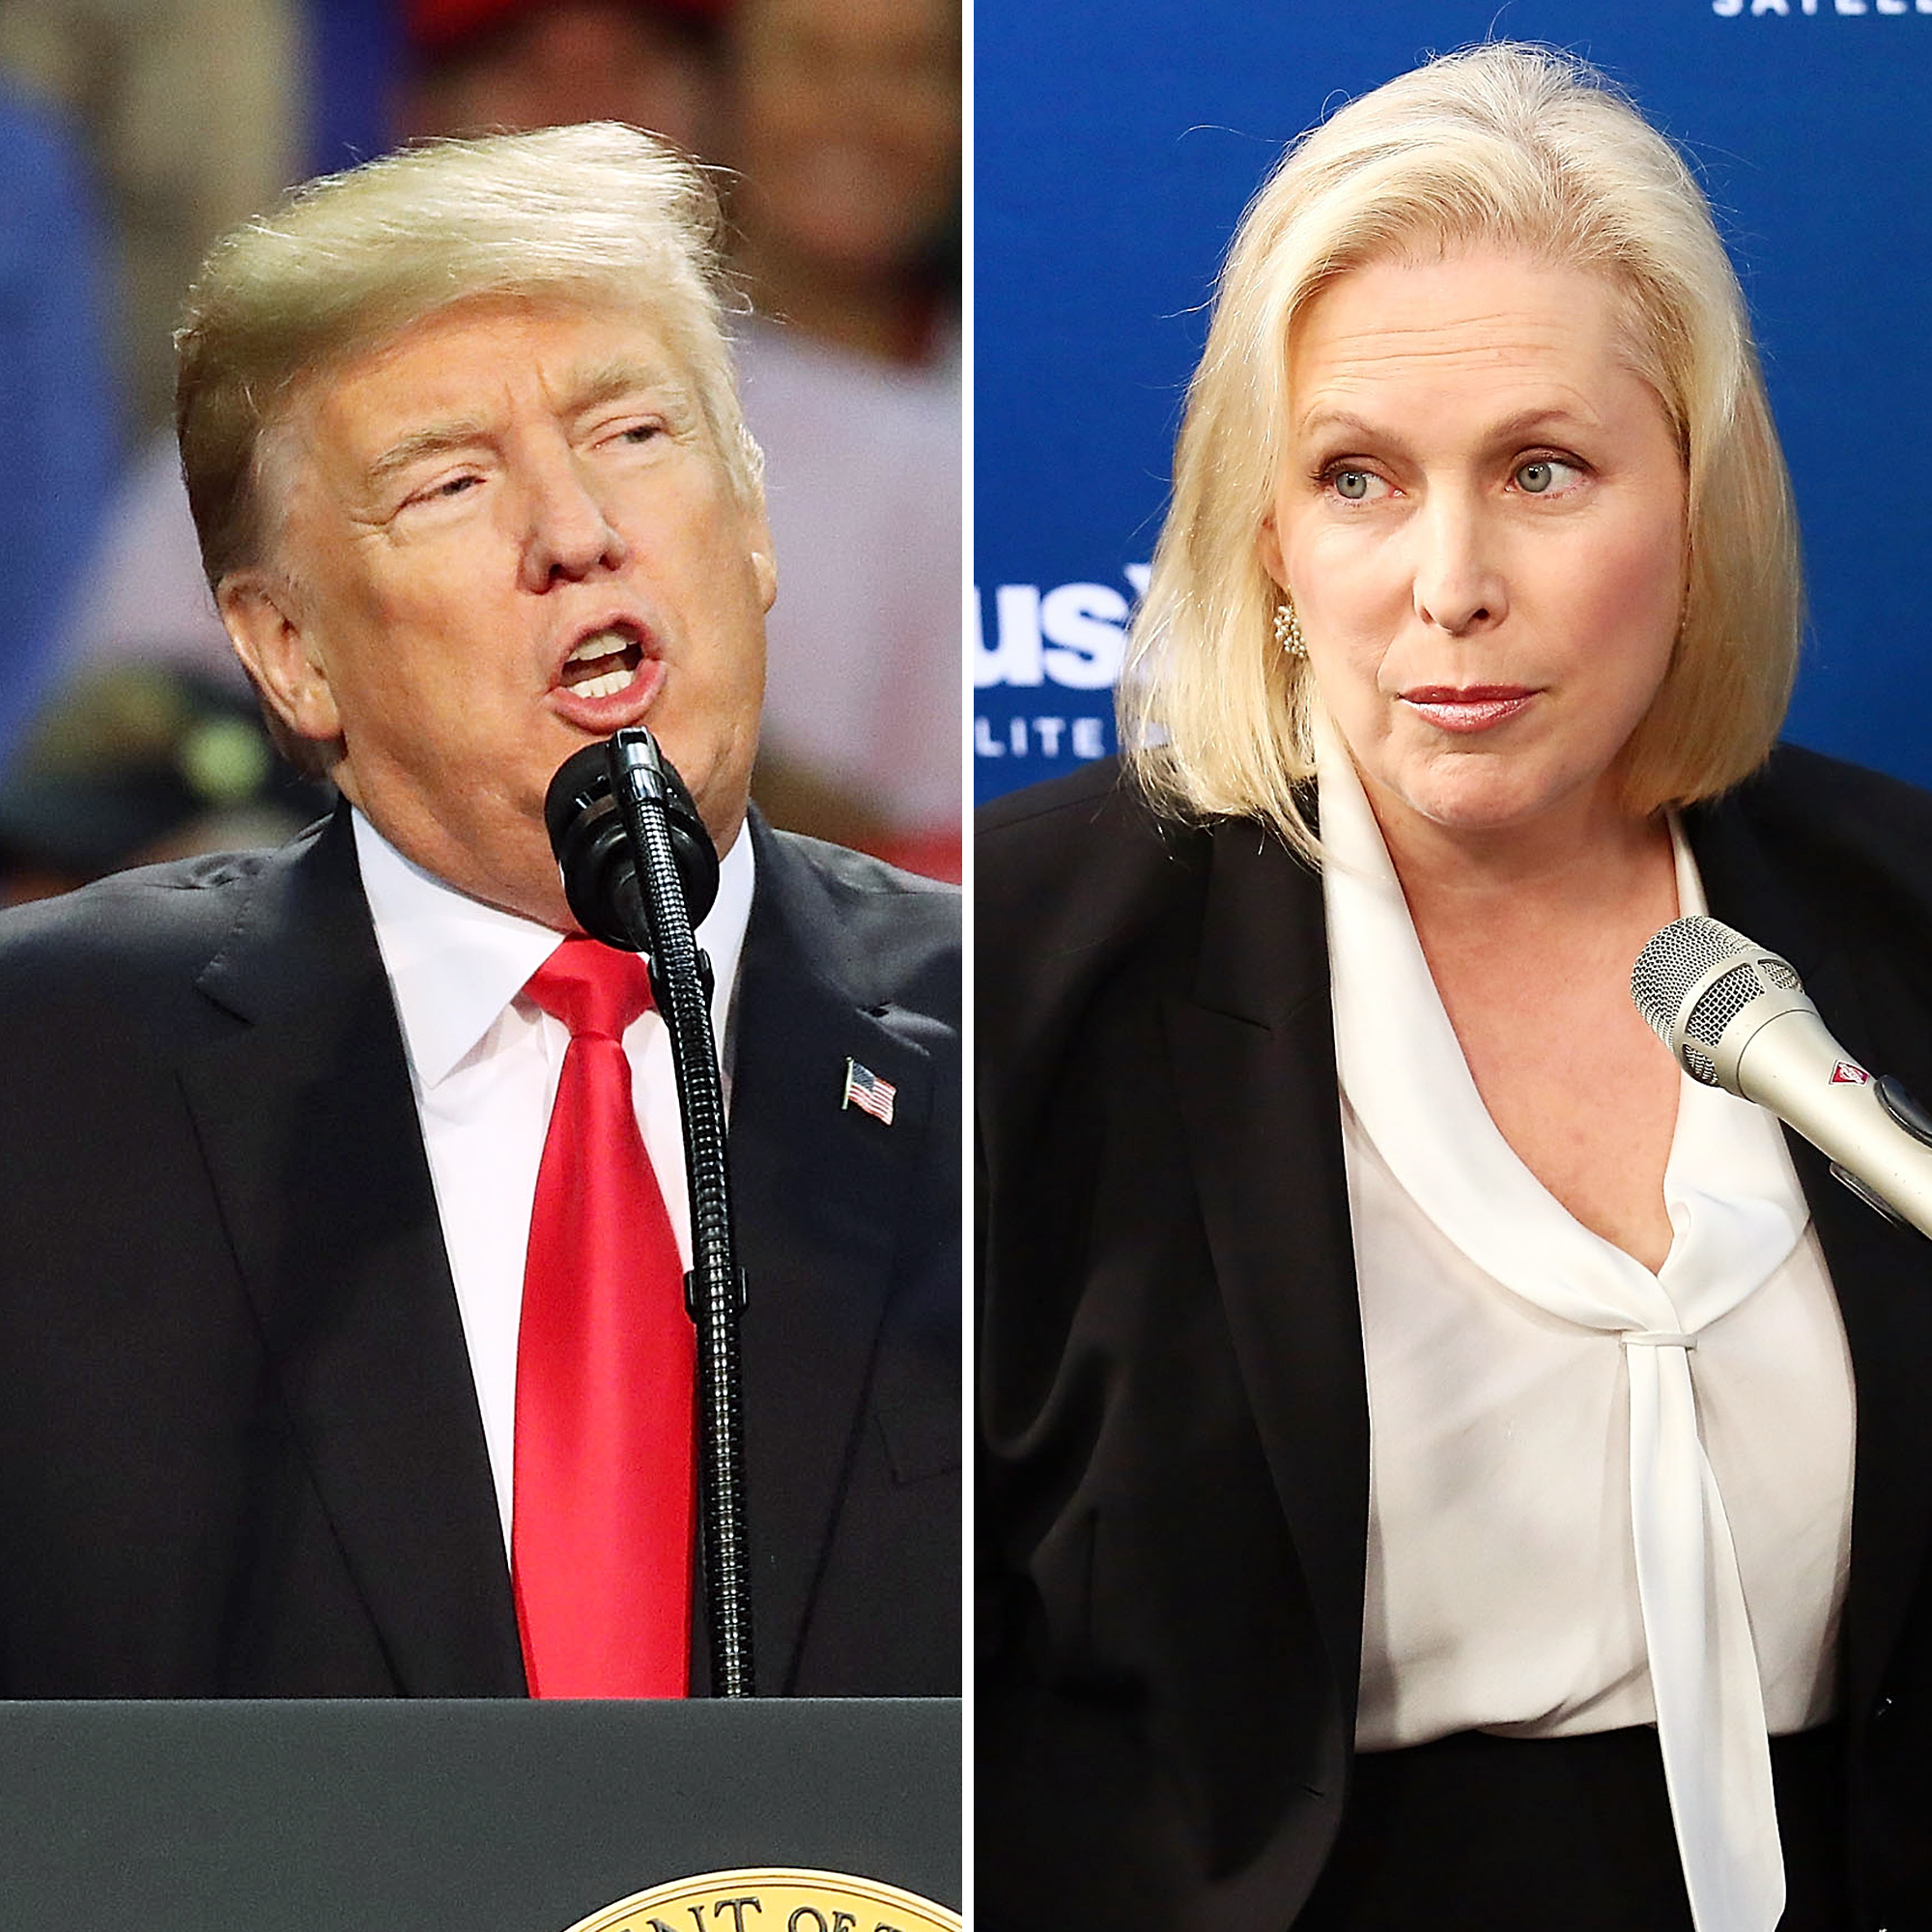 Donald Trump and Kirsten Gillibrand